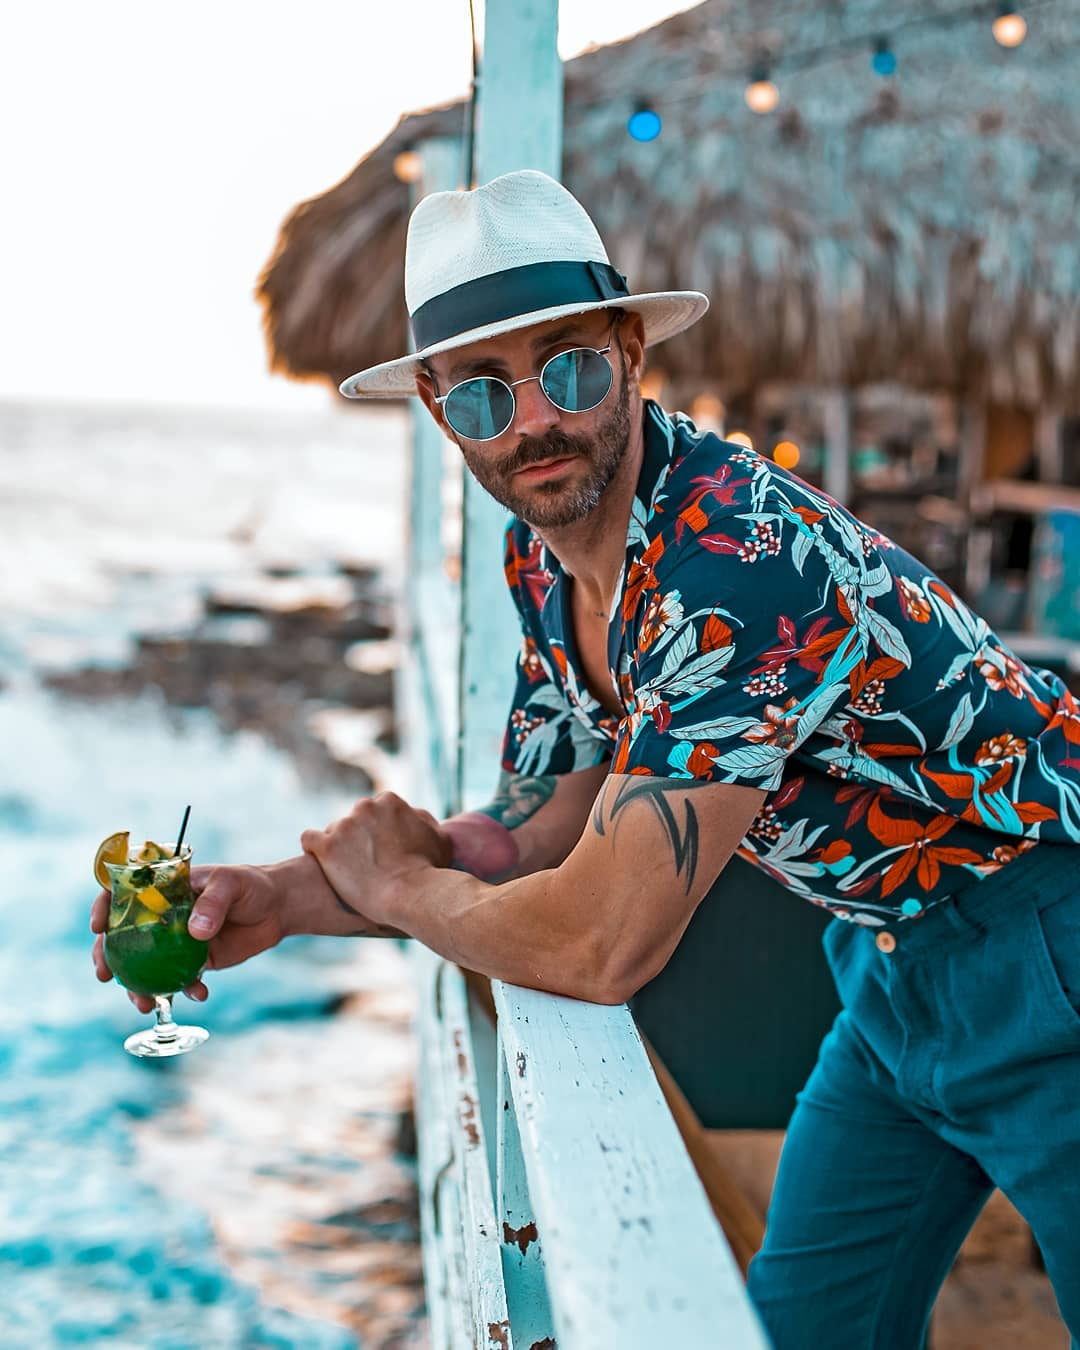 Blue Hawaiian shirt ,Blue sunglasses,cap